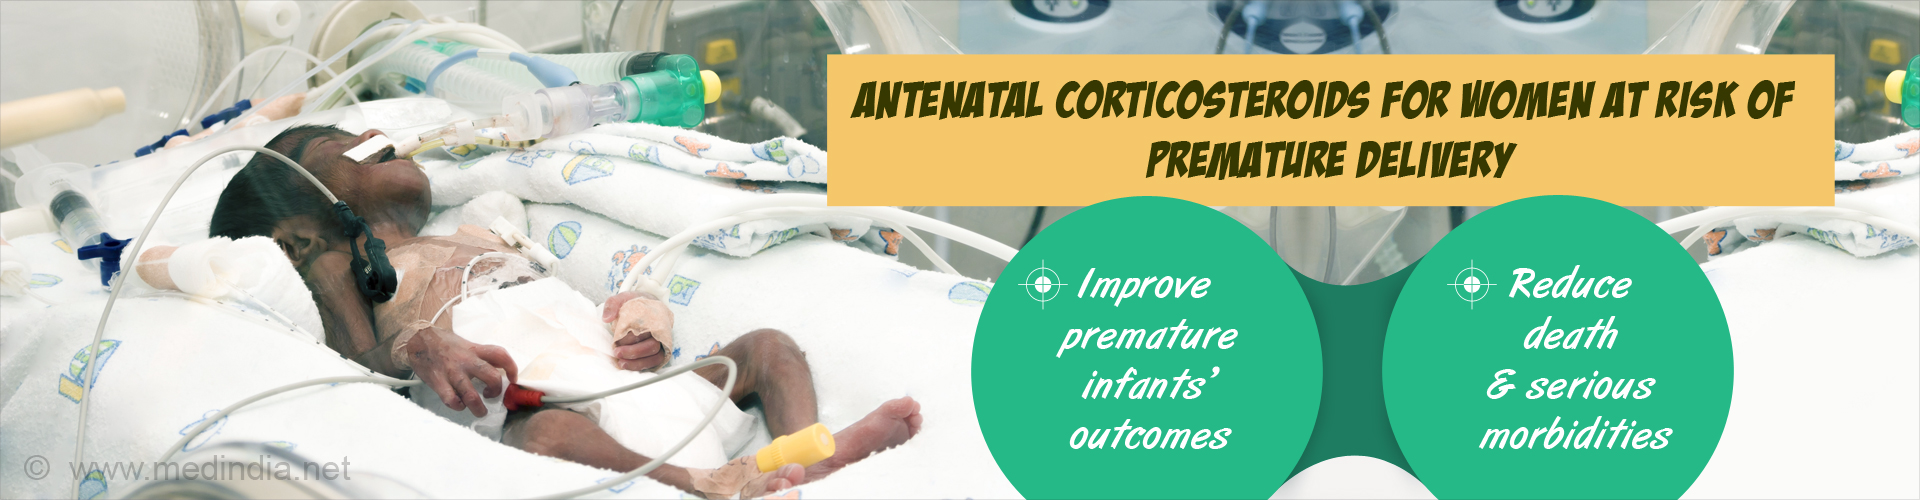 Highly Premature Babies Benefit Most from Corticosteroids Before Birth